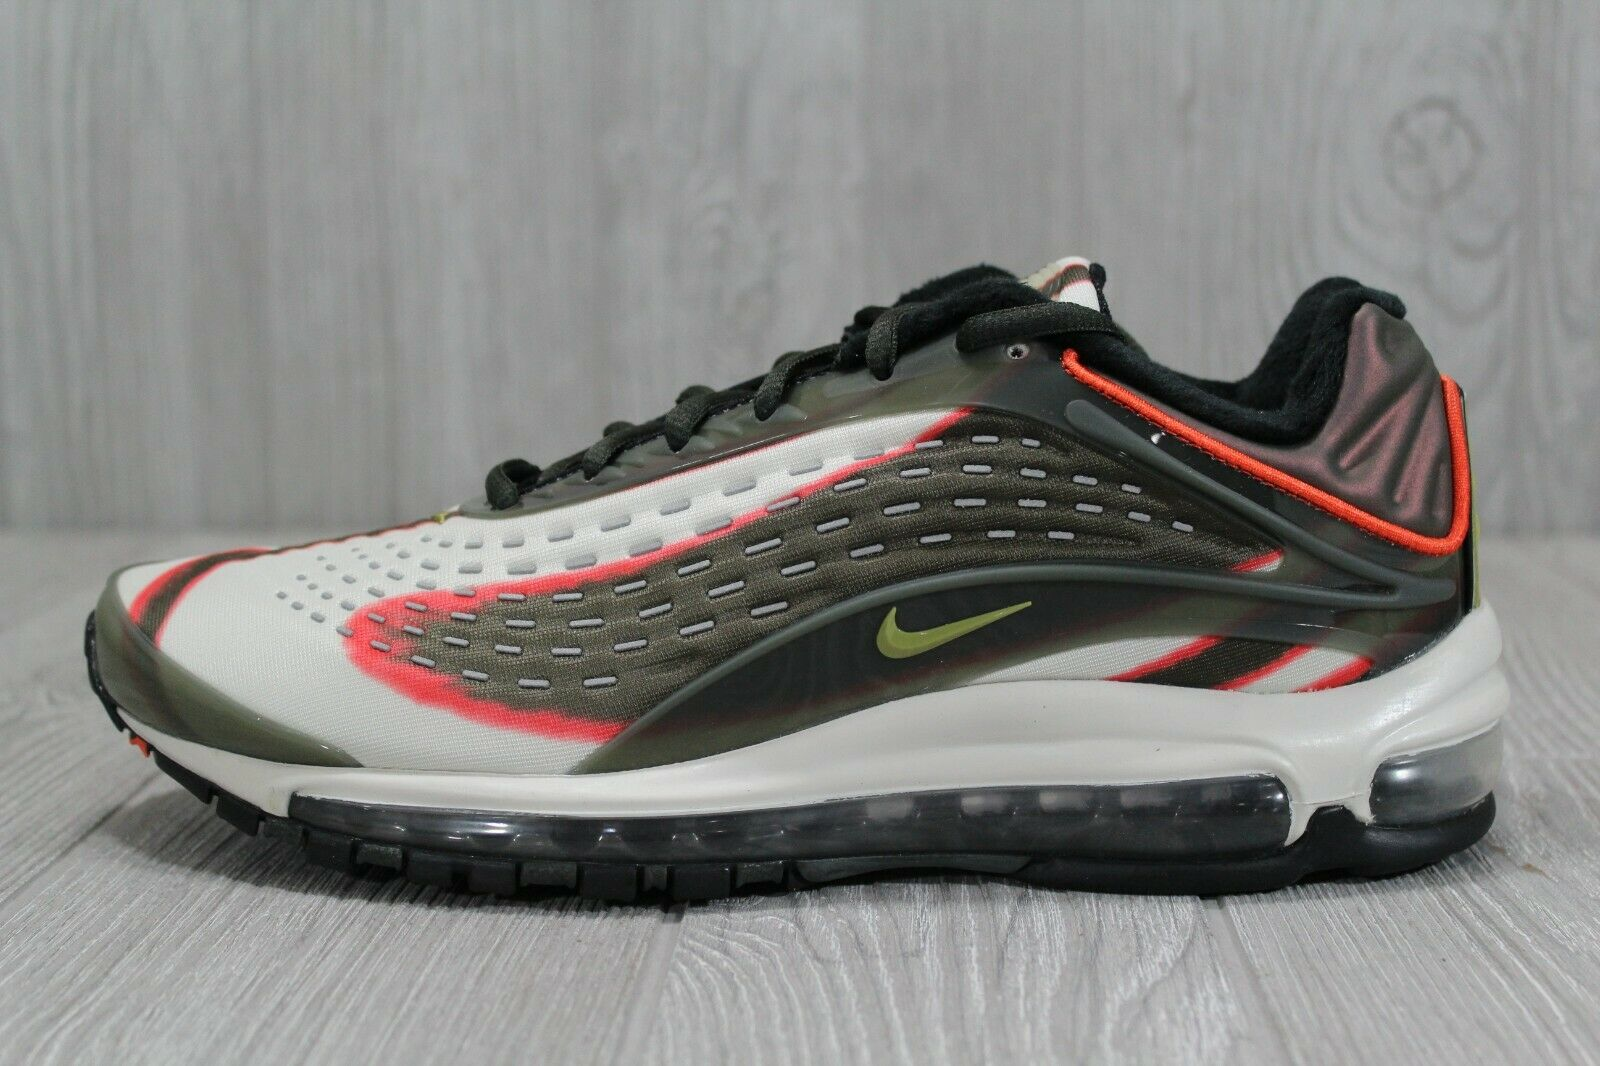 39 Nike Mens Air Max Deluxe Running shoes Sequoia Green SZ 8.5 - 10.5 AJ7831-300